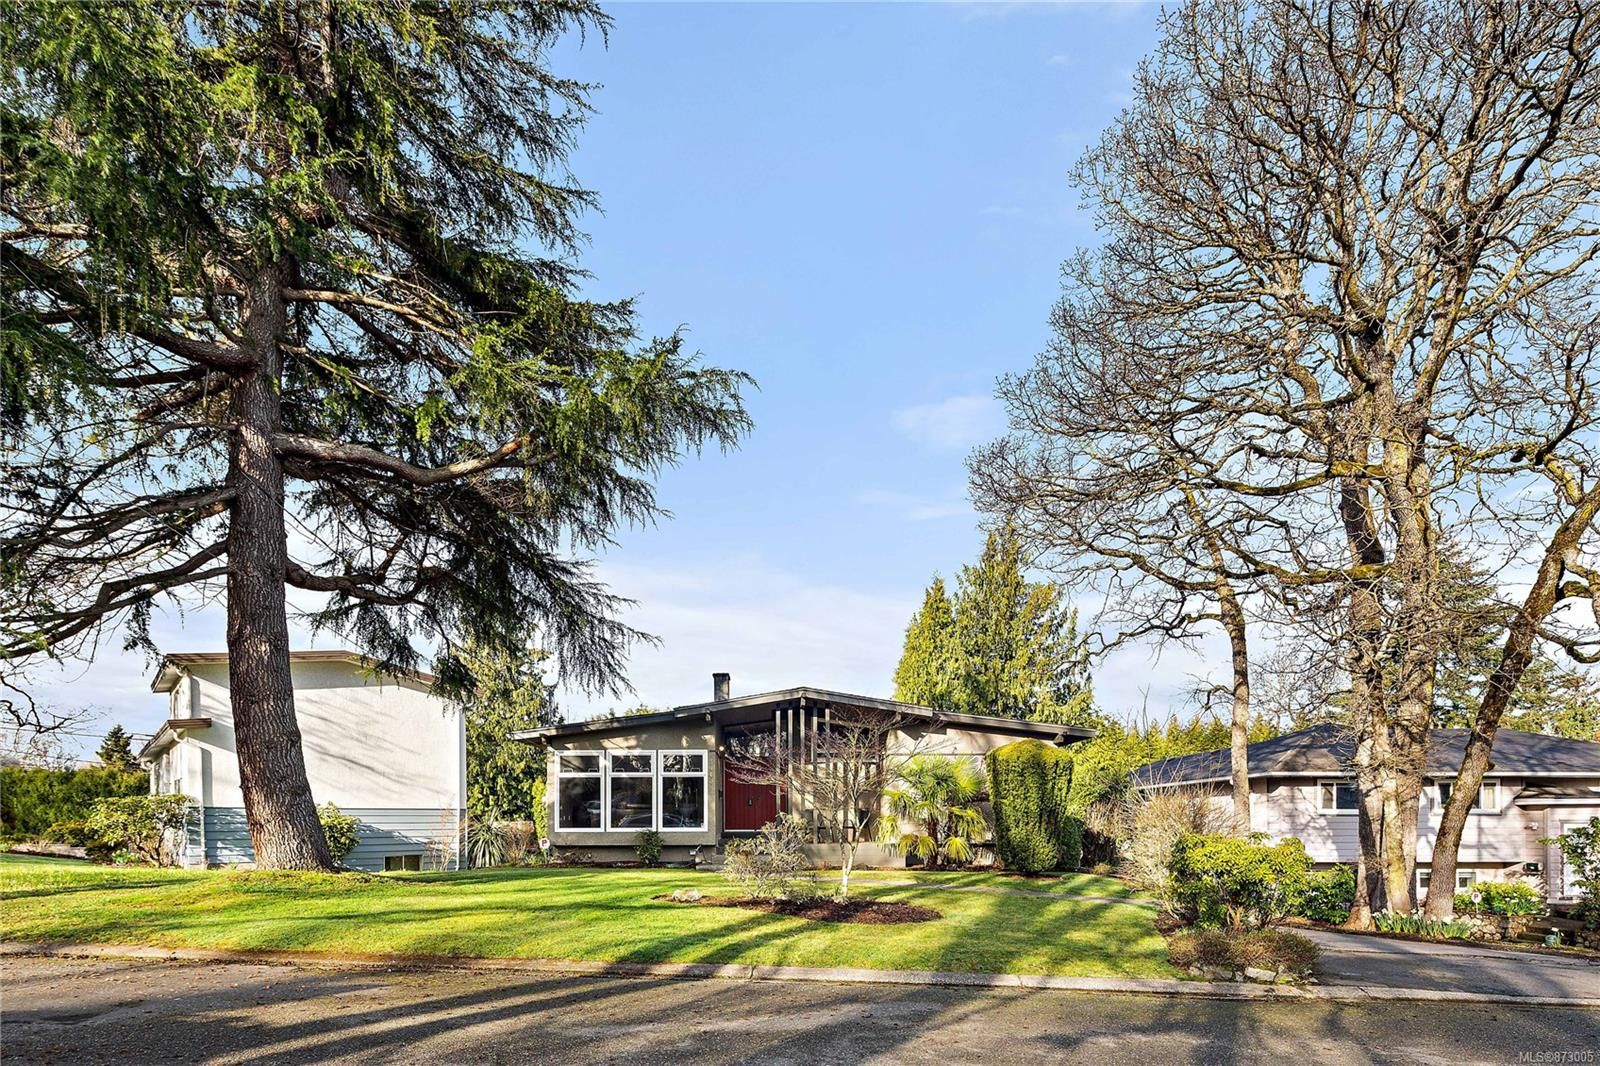 Main Photo: 3940 Margot Pl in : SE Maplewood House for sale (Saanich East)  : MLS®# 873005